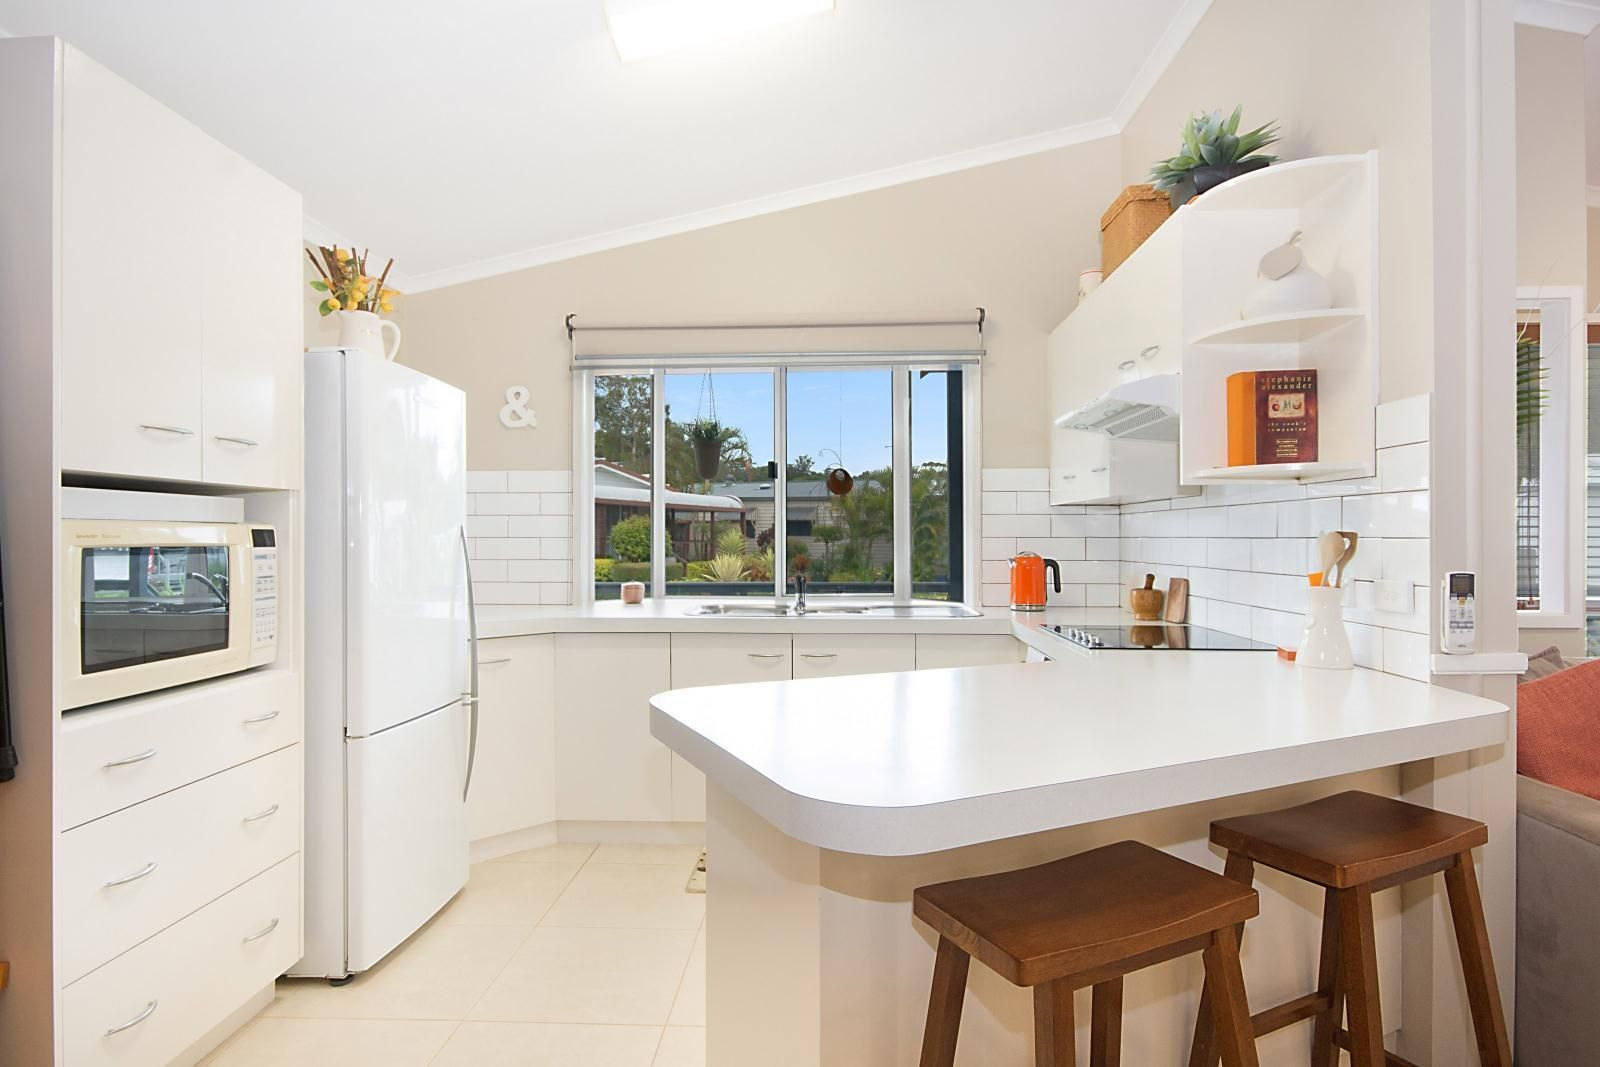 97/502 Ross Lane, Lennox Head NSW 2478, Image 2